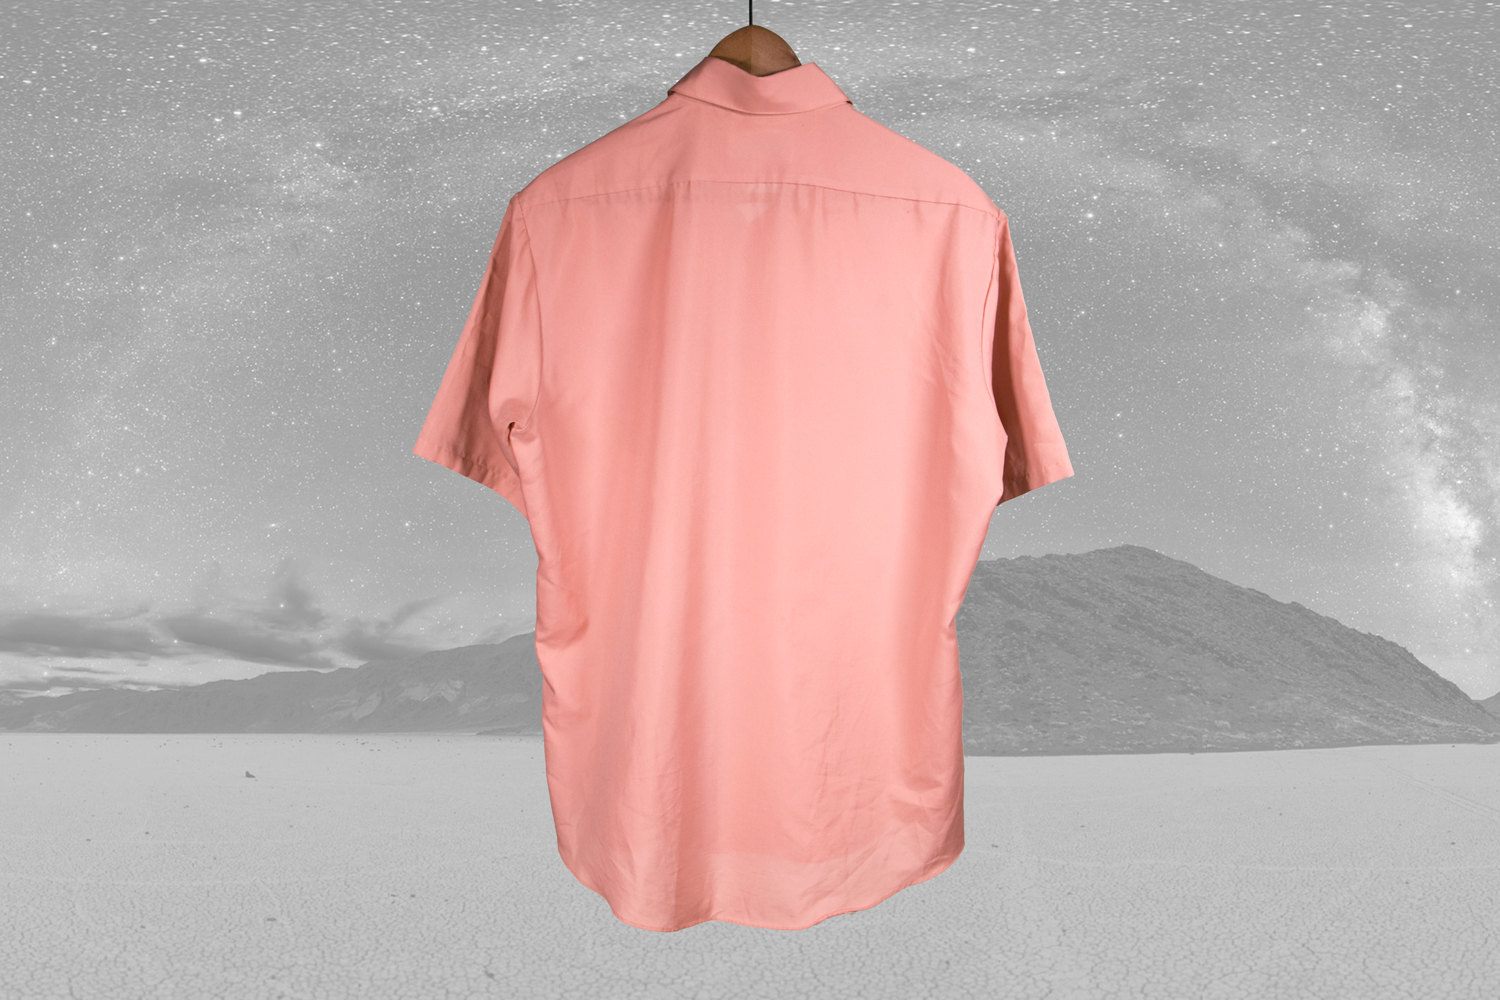 "Vintage 1970's Salmon Short Sleeve Shirt by Montgomery Ward - 16"" Neck - Work Shirt / Dress Shirt - Hipster, Indie, Retro, Pink"